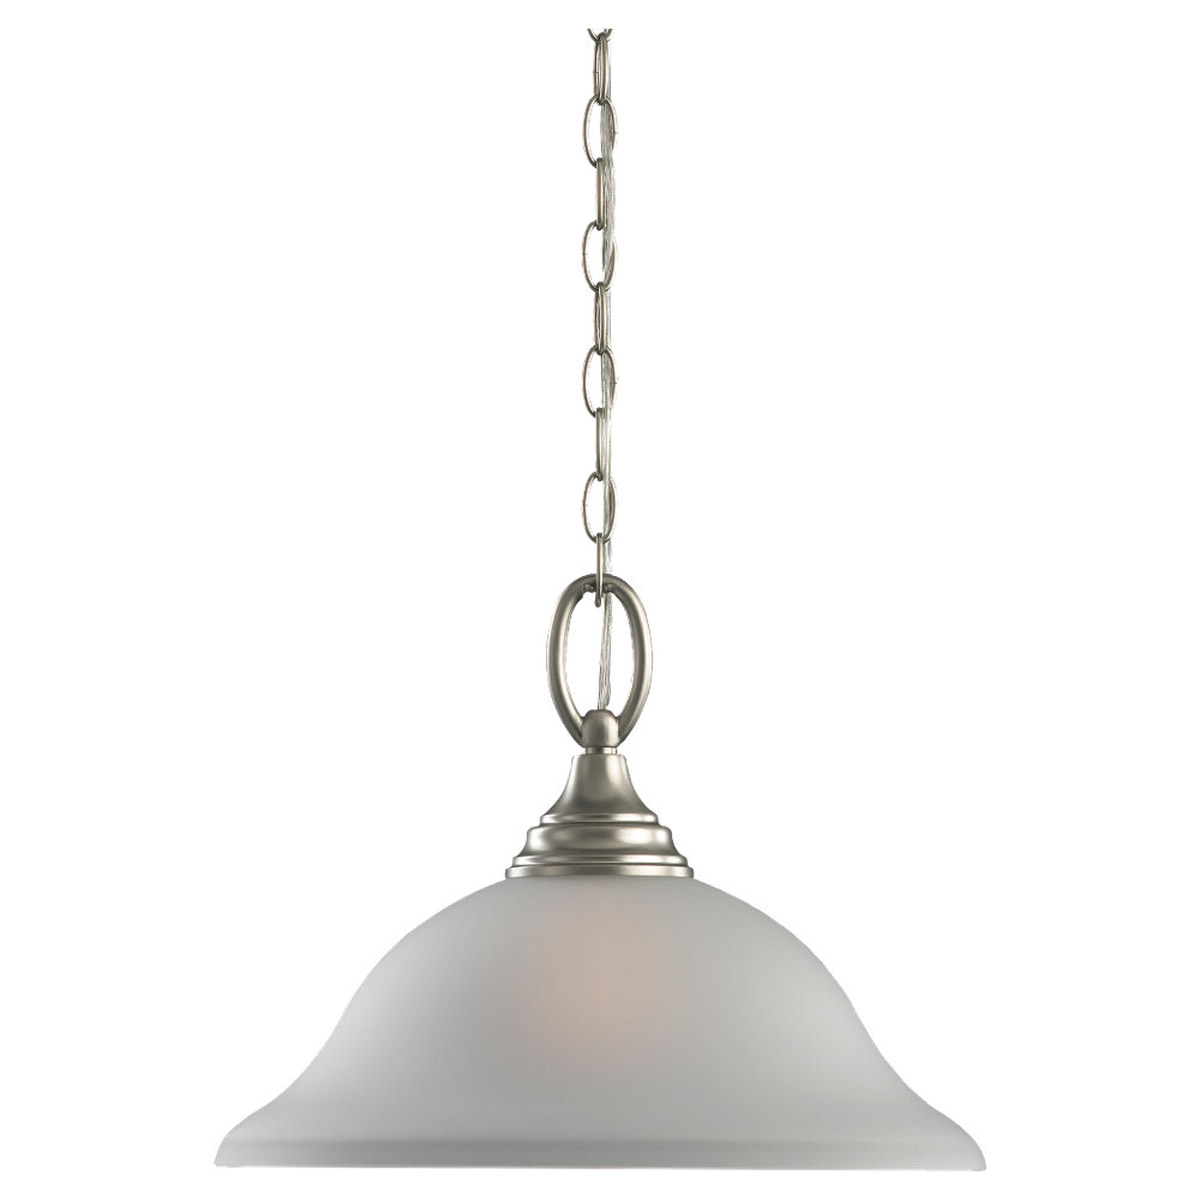 Sea Gull 65625BLE-962 Wheaton 1 Light 15 inch Brushed Nickel Pendant Down Light Ceiling Light in Fluorescent photo